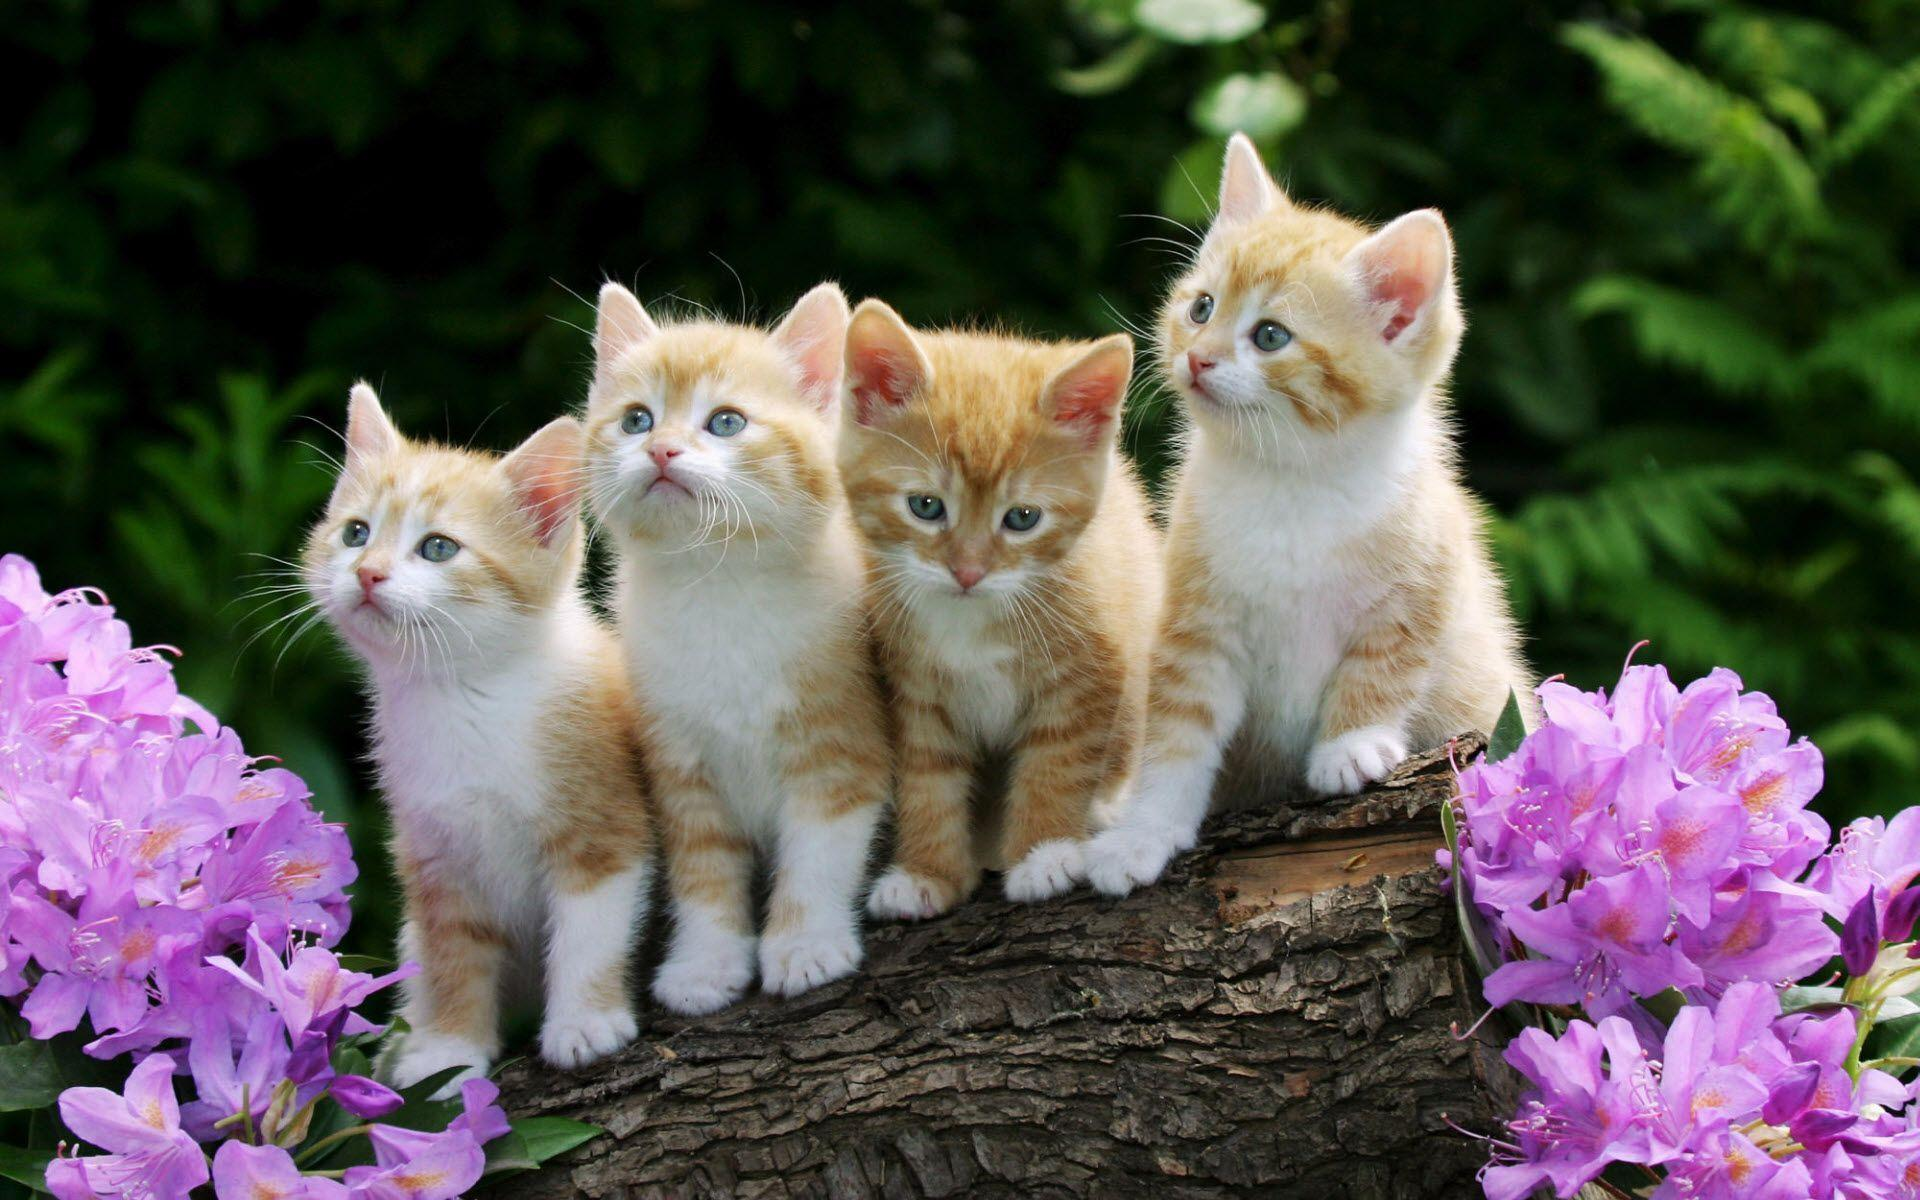 curious_kittens-wide.jpg